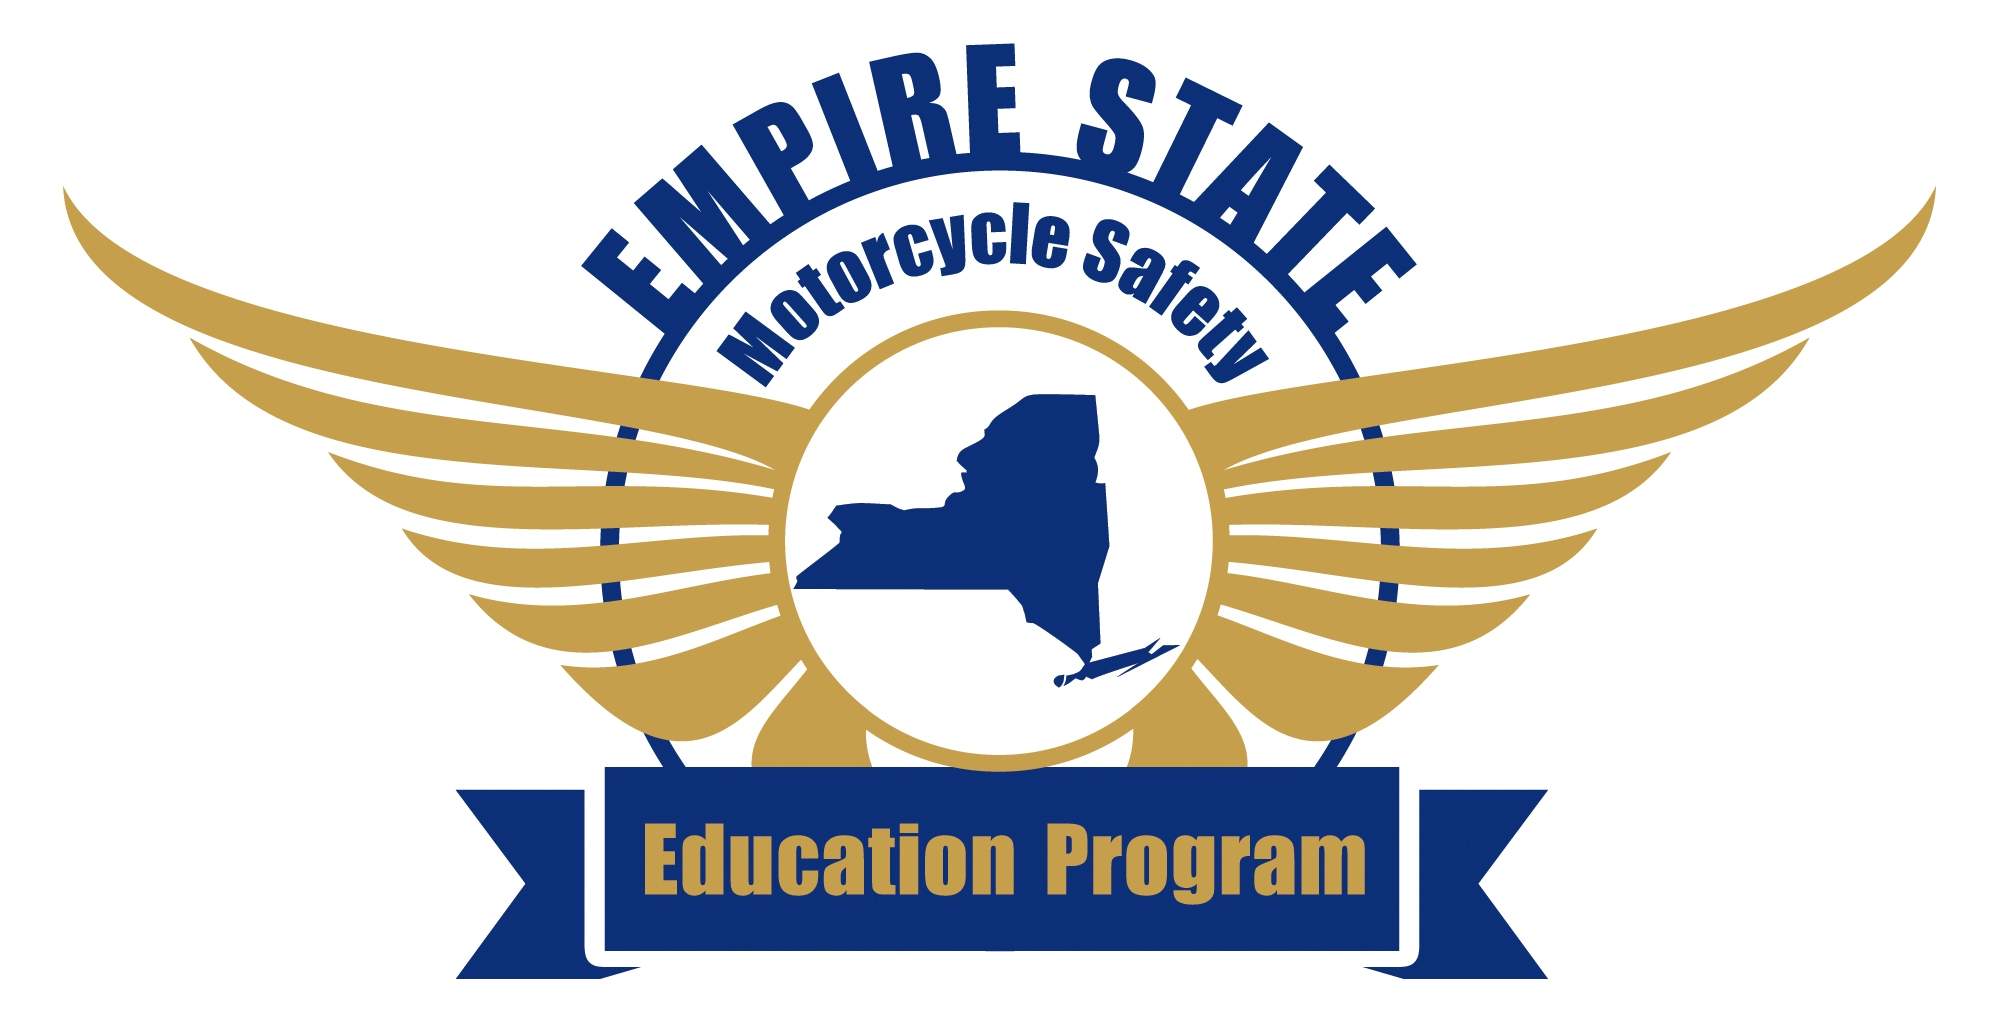 Empire-State-Motorcycle-LOGO-12.jpg